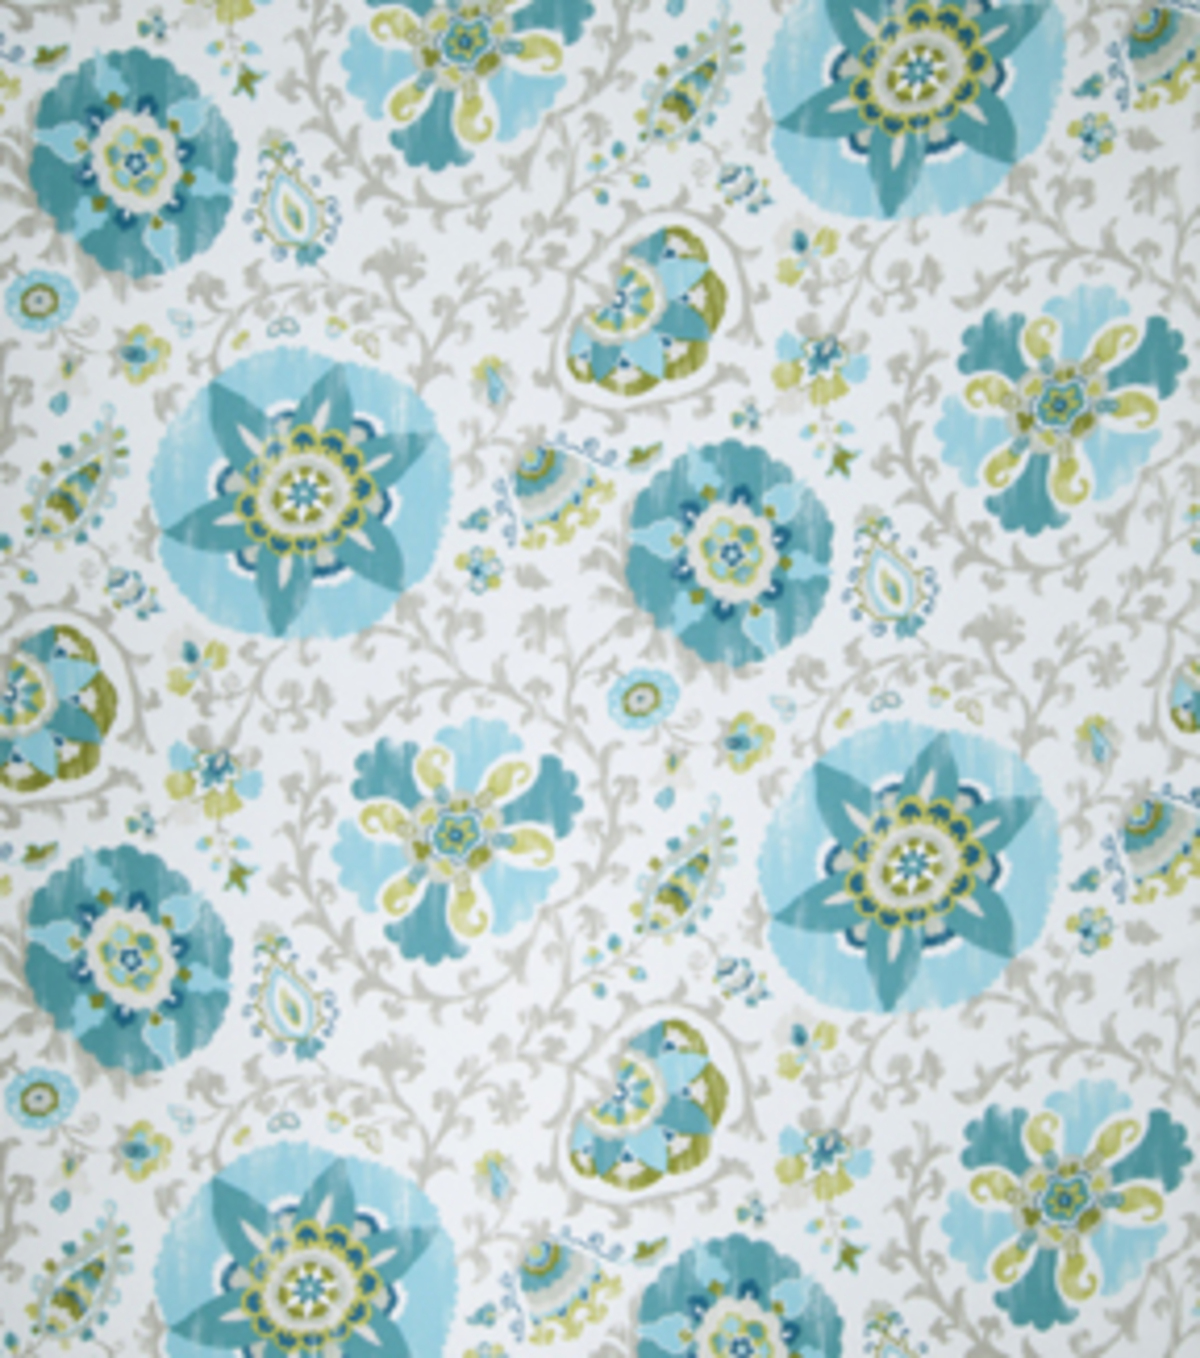 Home Decor 8\u0022x8\u0022 Fabric Swatch-Eaton Square Flowerama   Poolside Floral